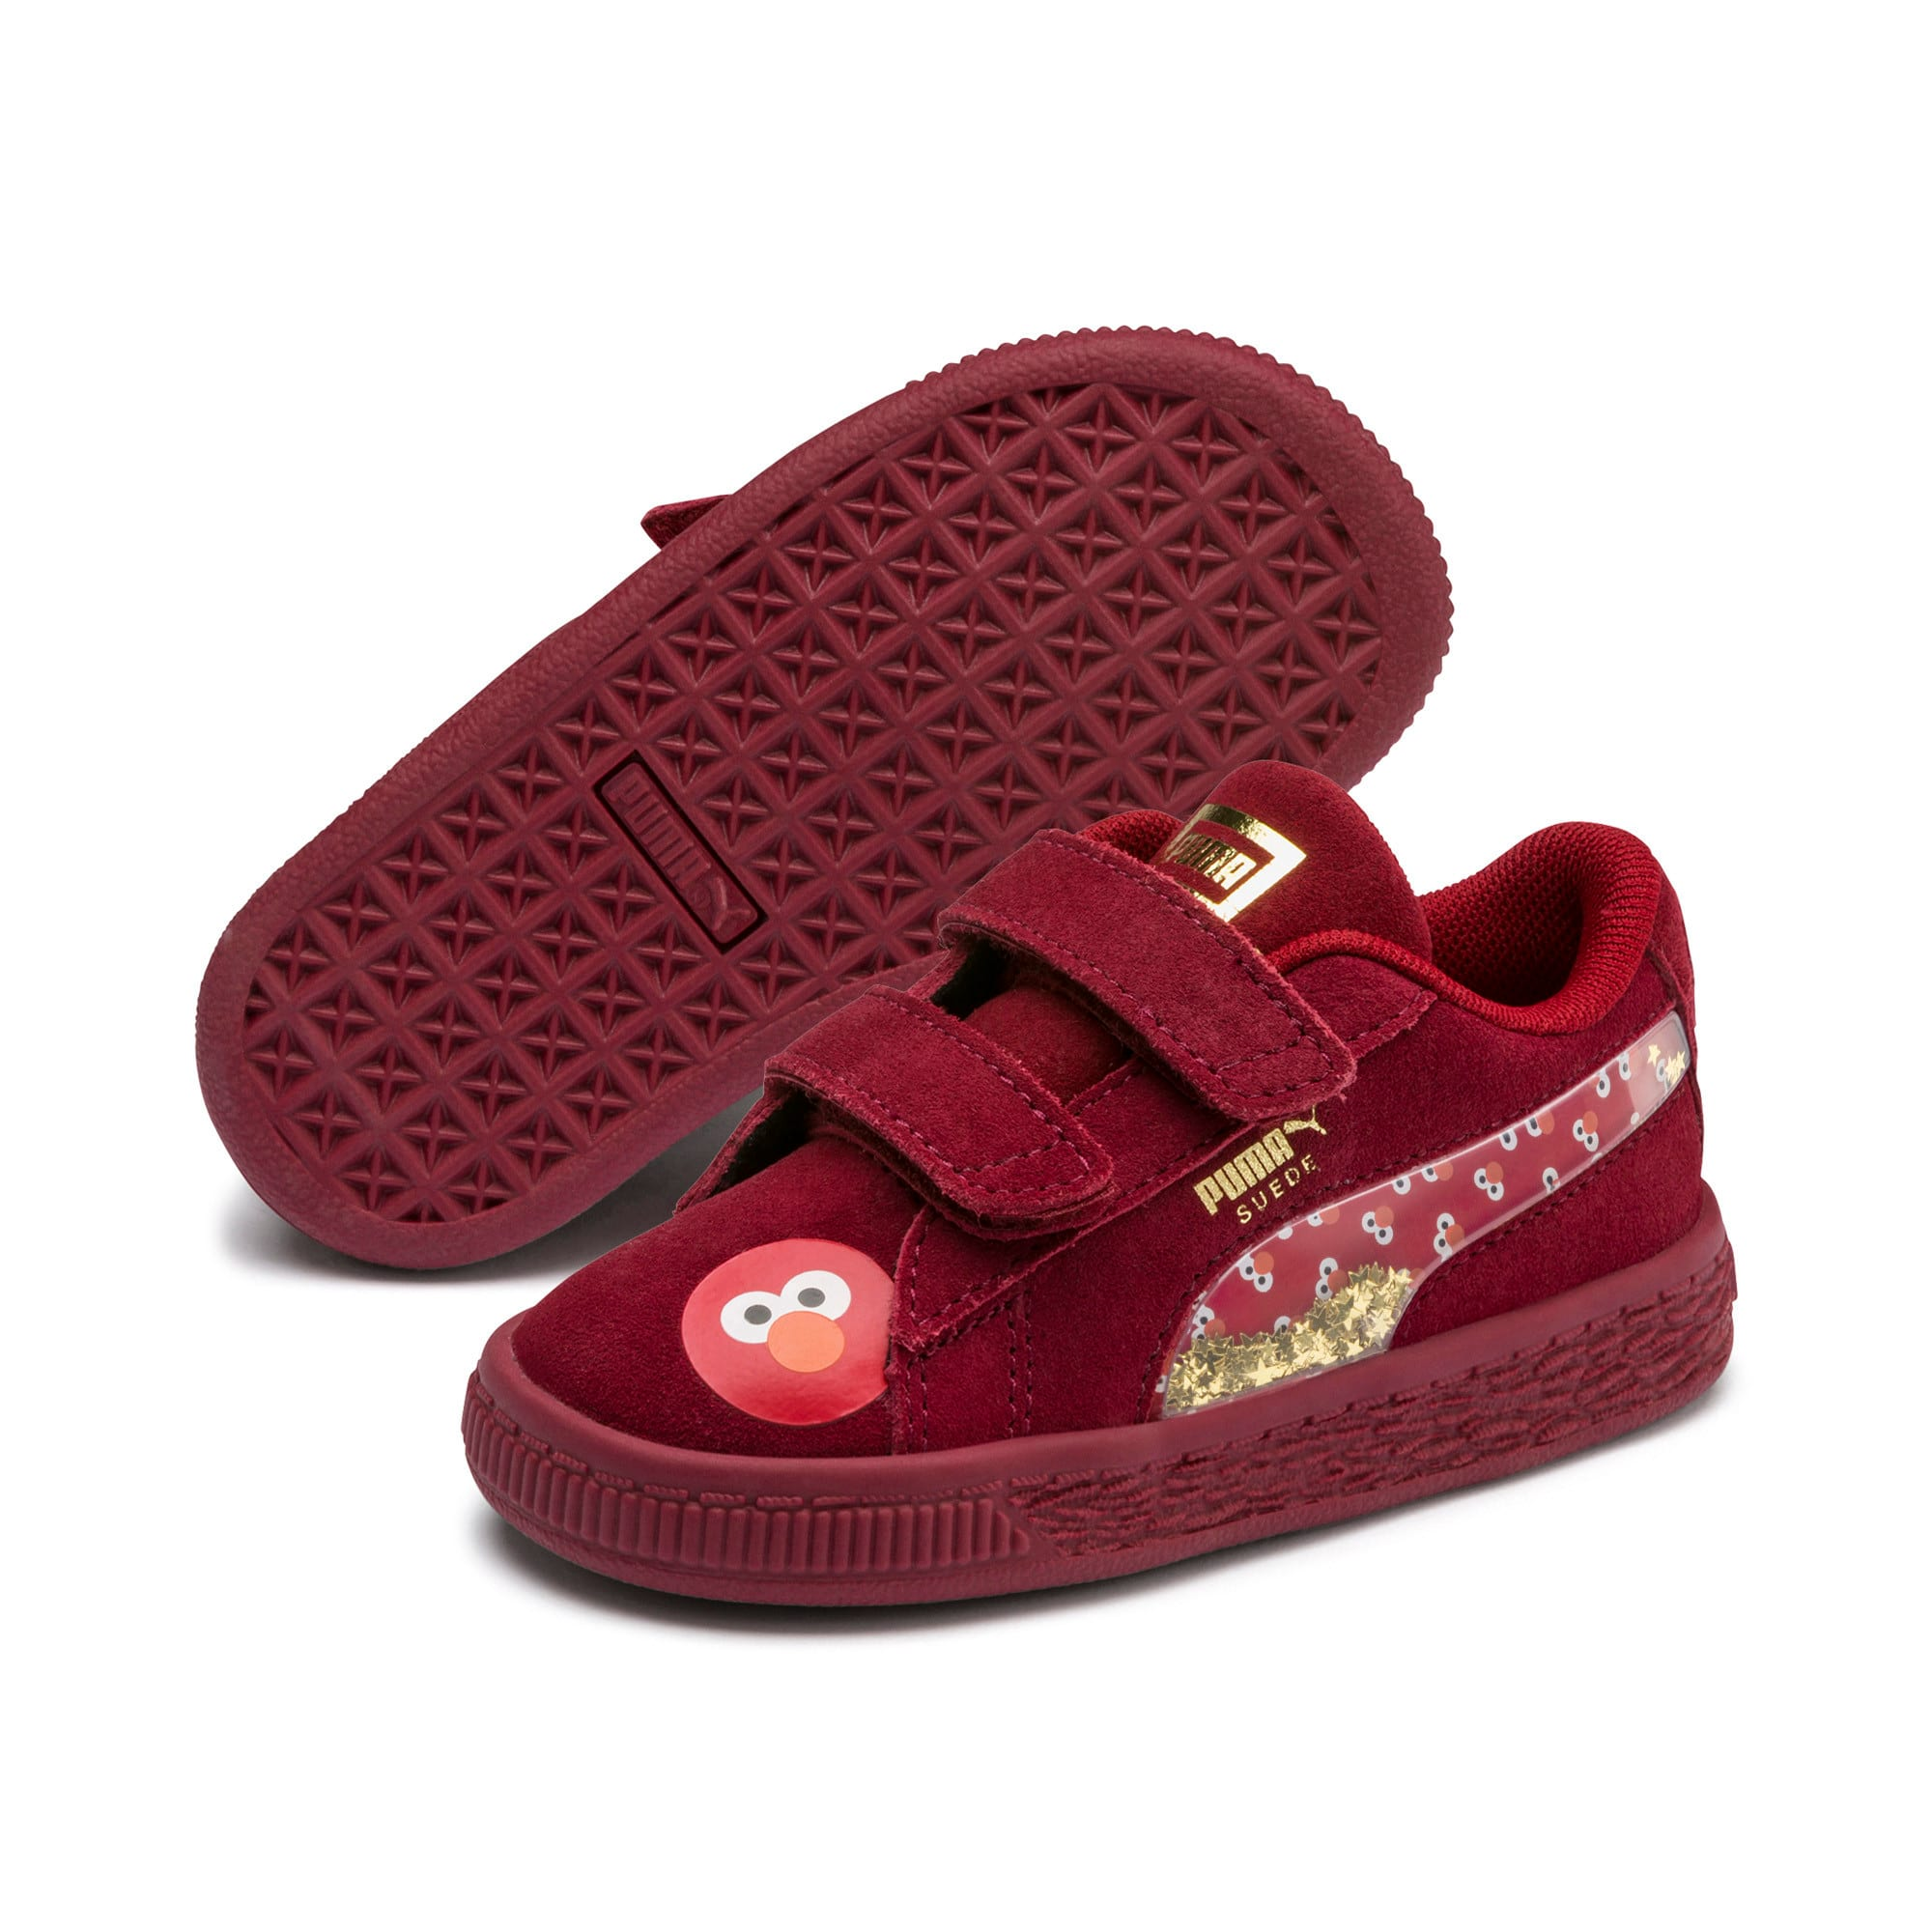 Thumbnail 2 of Sesame Street 50 Suede Statement Babies' Trainers, Rhubarb-Puma White, medium